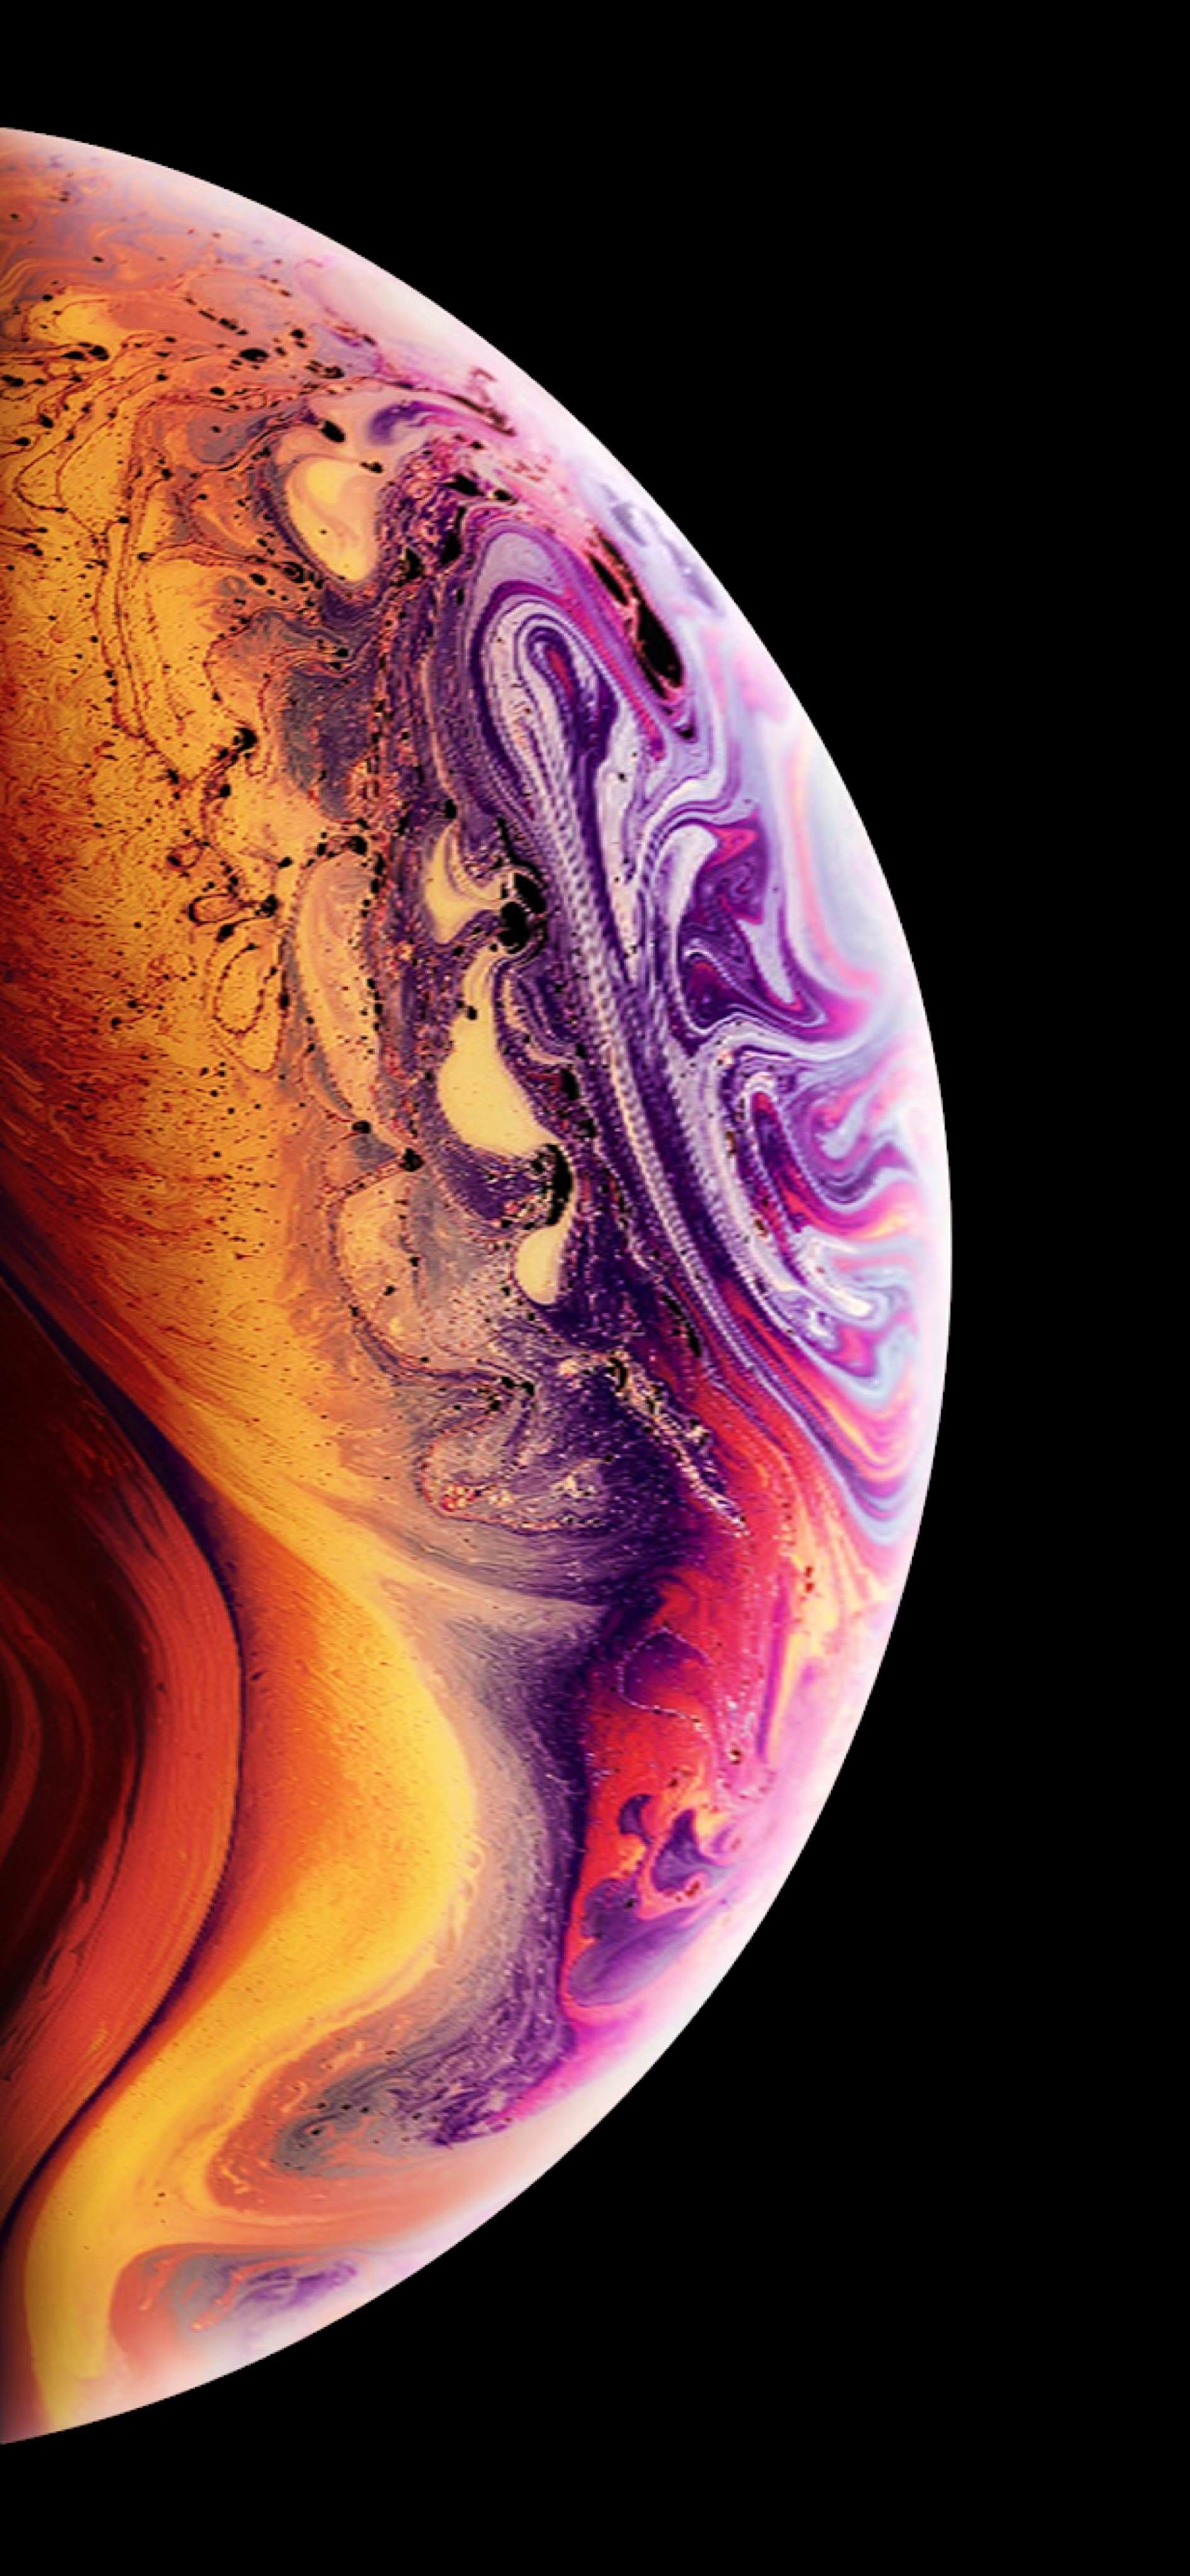 Full Res iPhone XS Wallpaper [1892 x 4096] prints in 2019 1892x4096